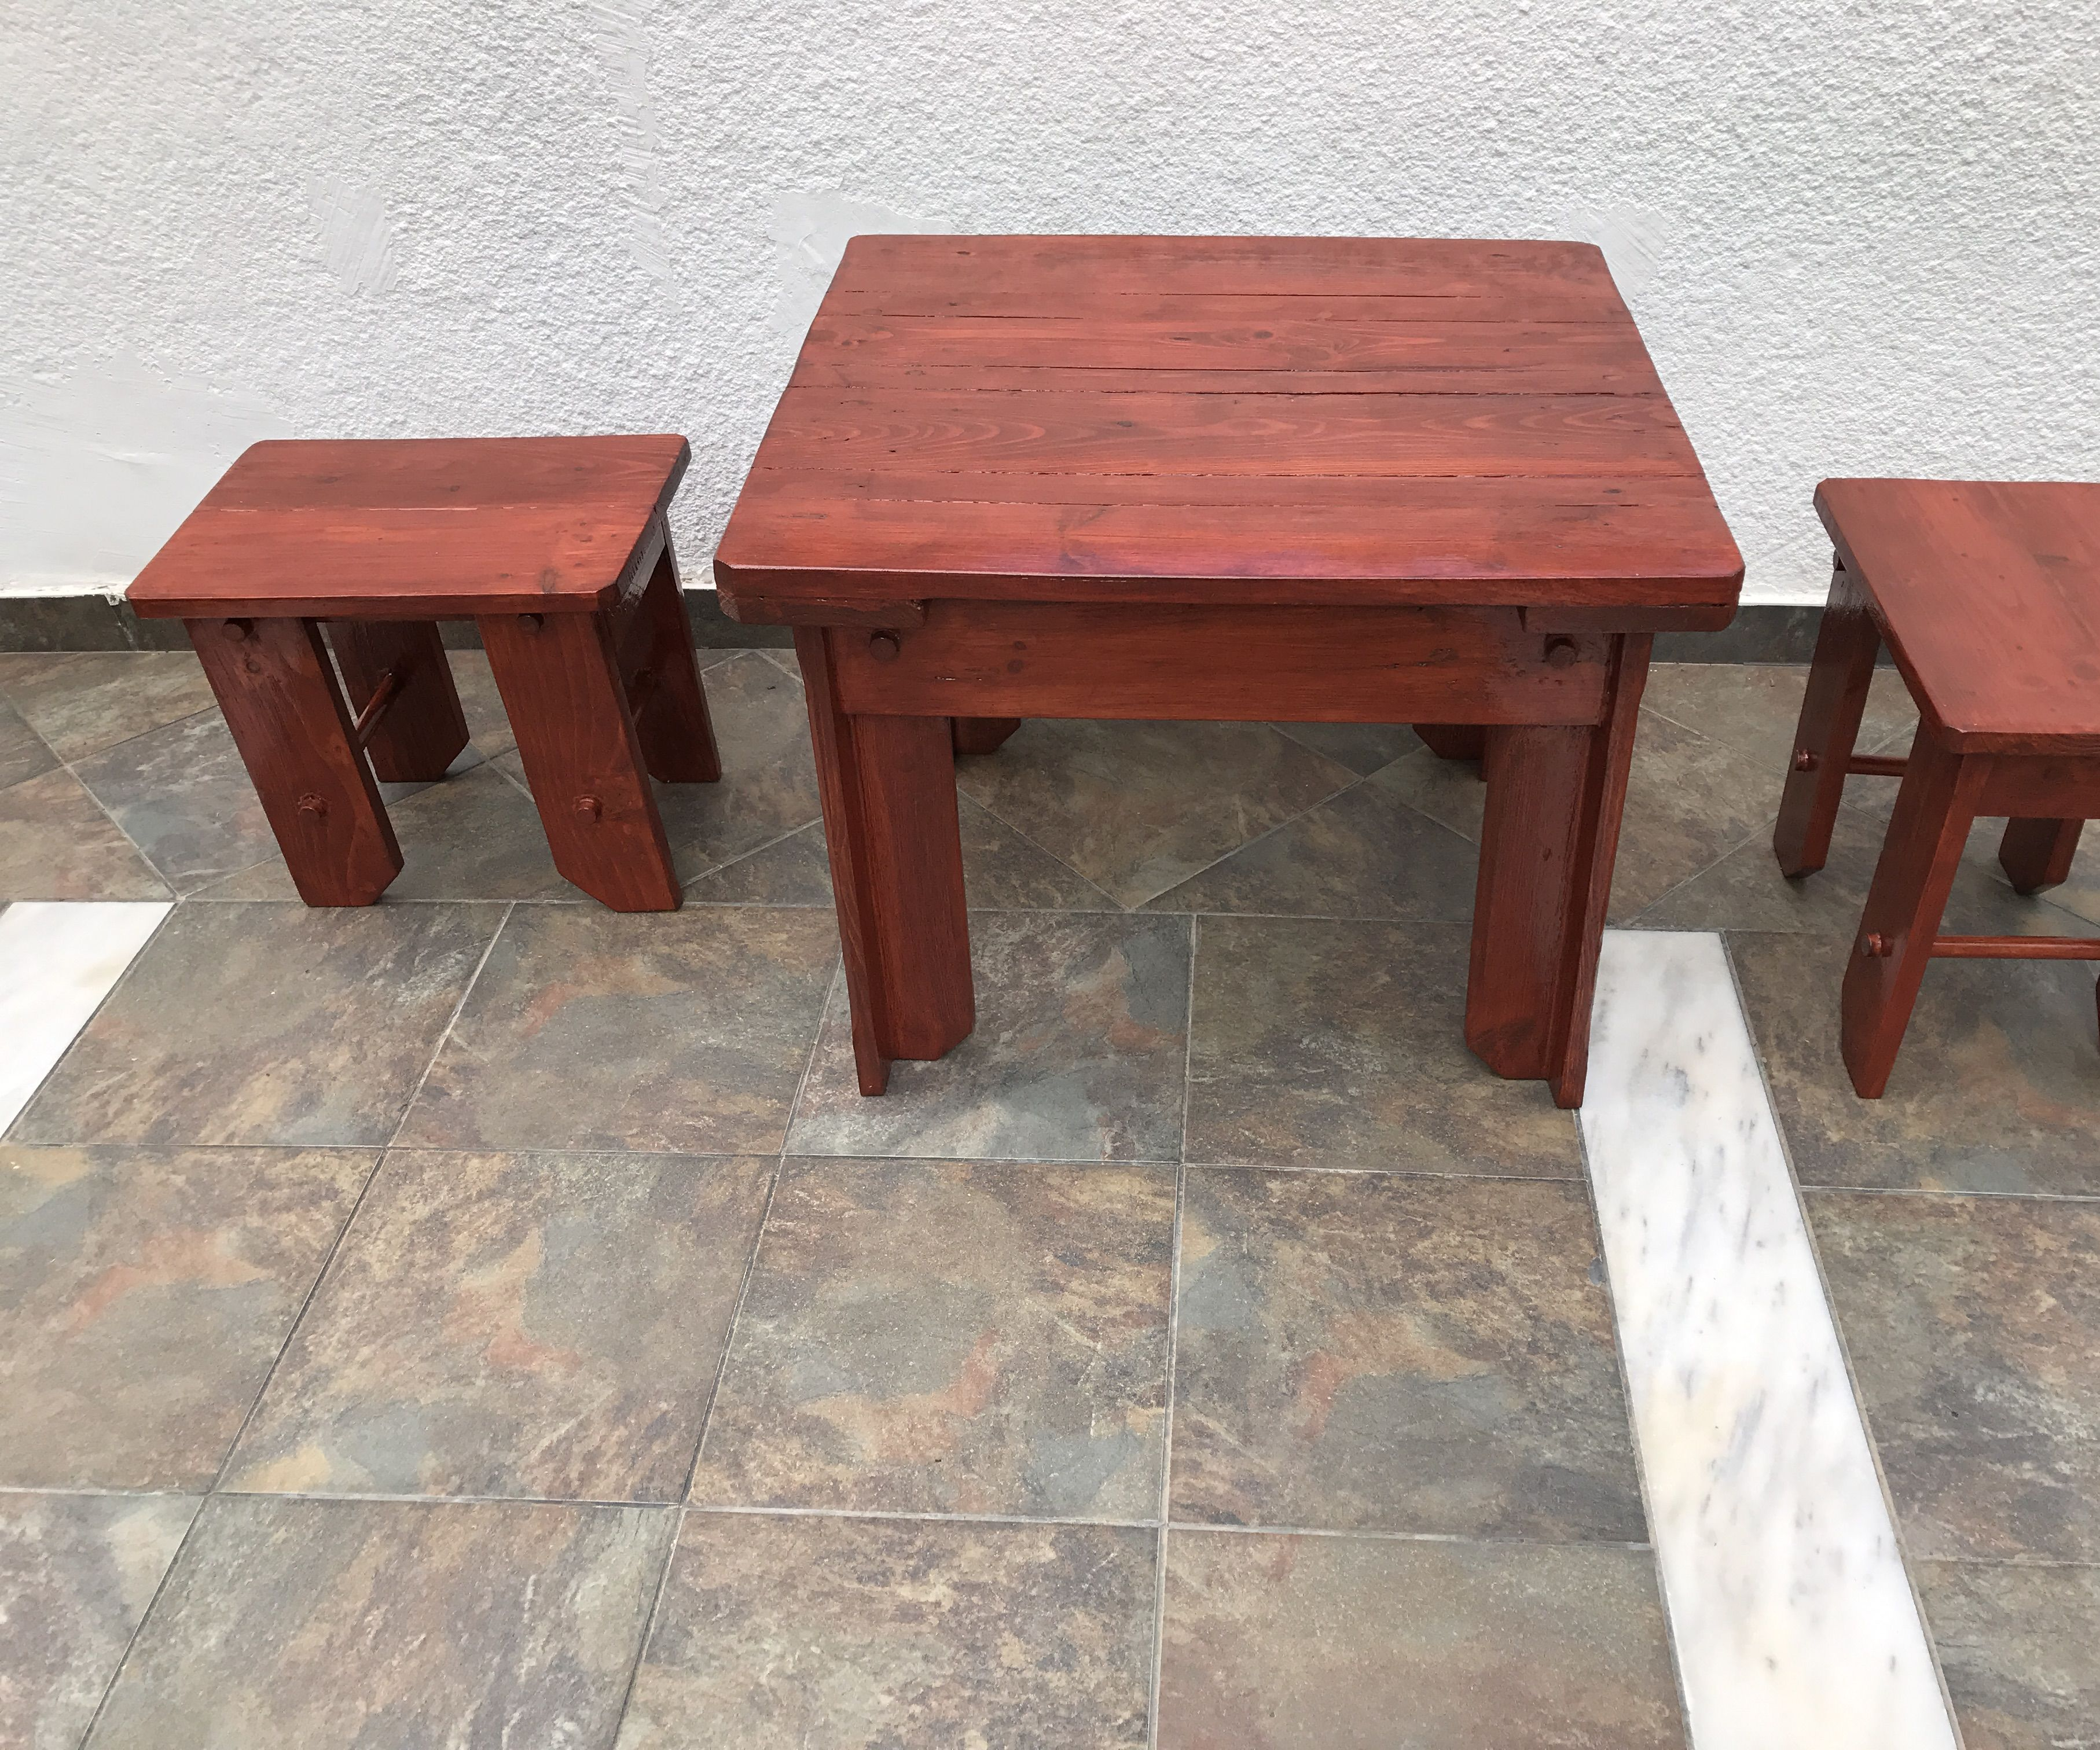 Low Table and Stools